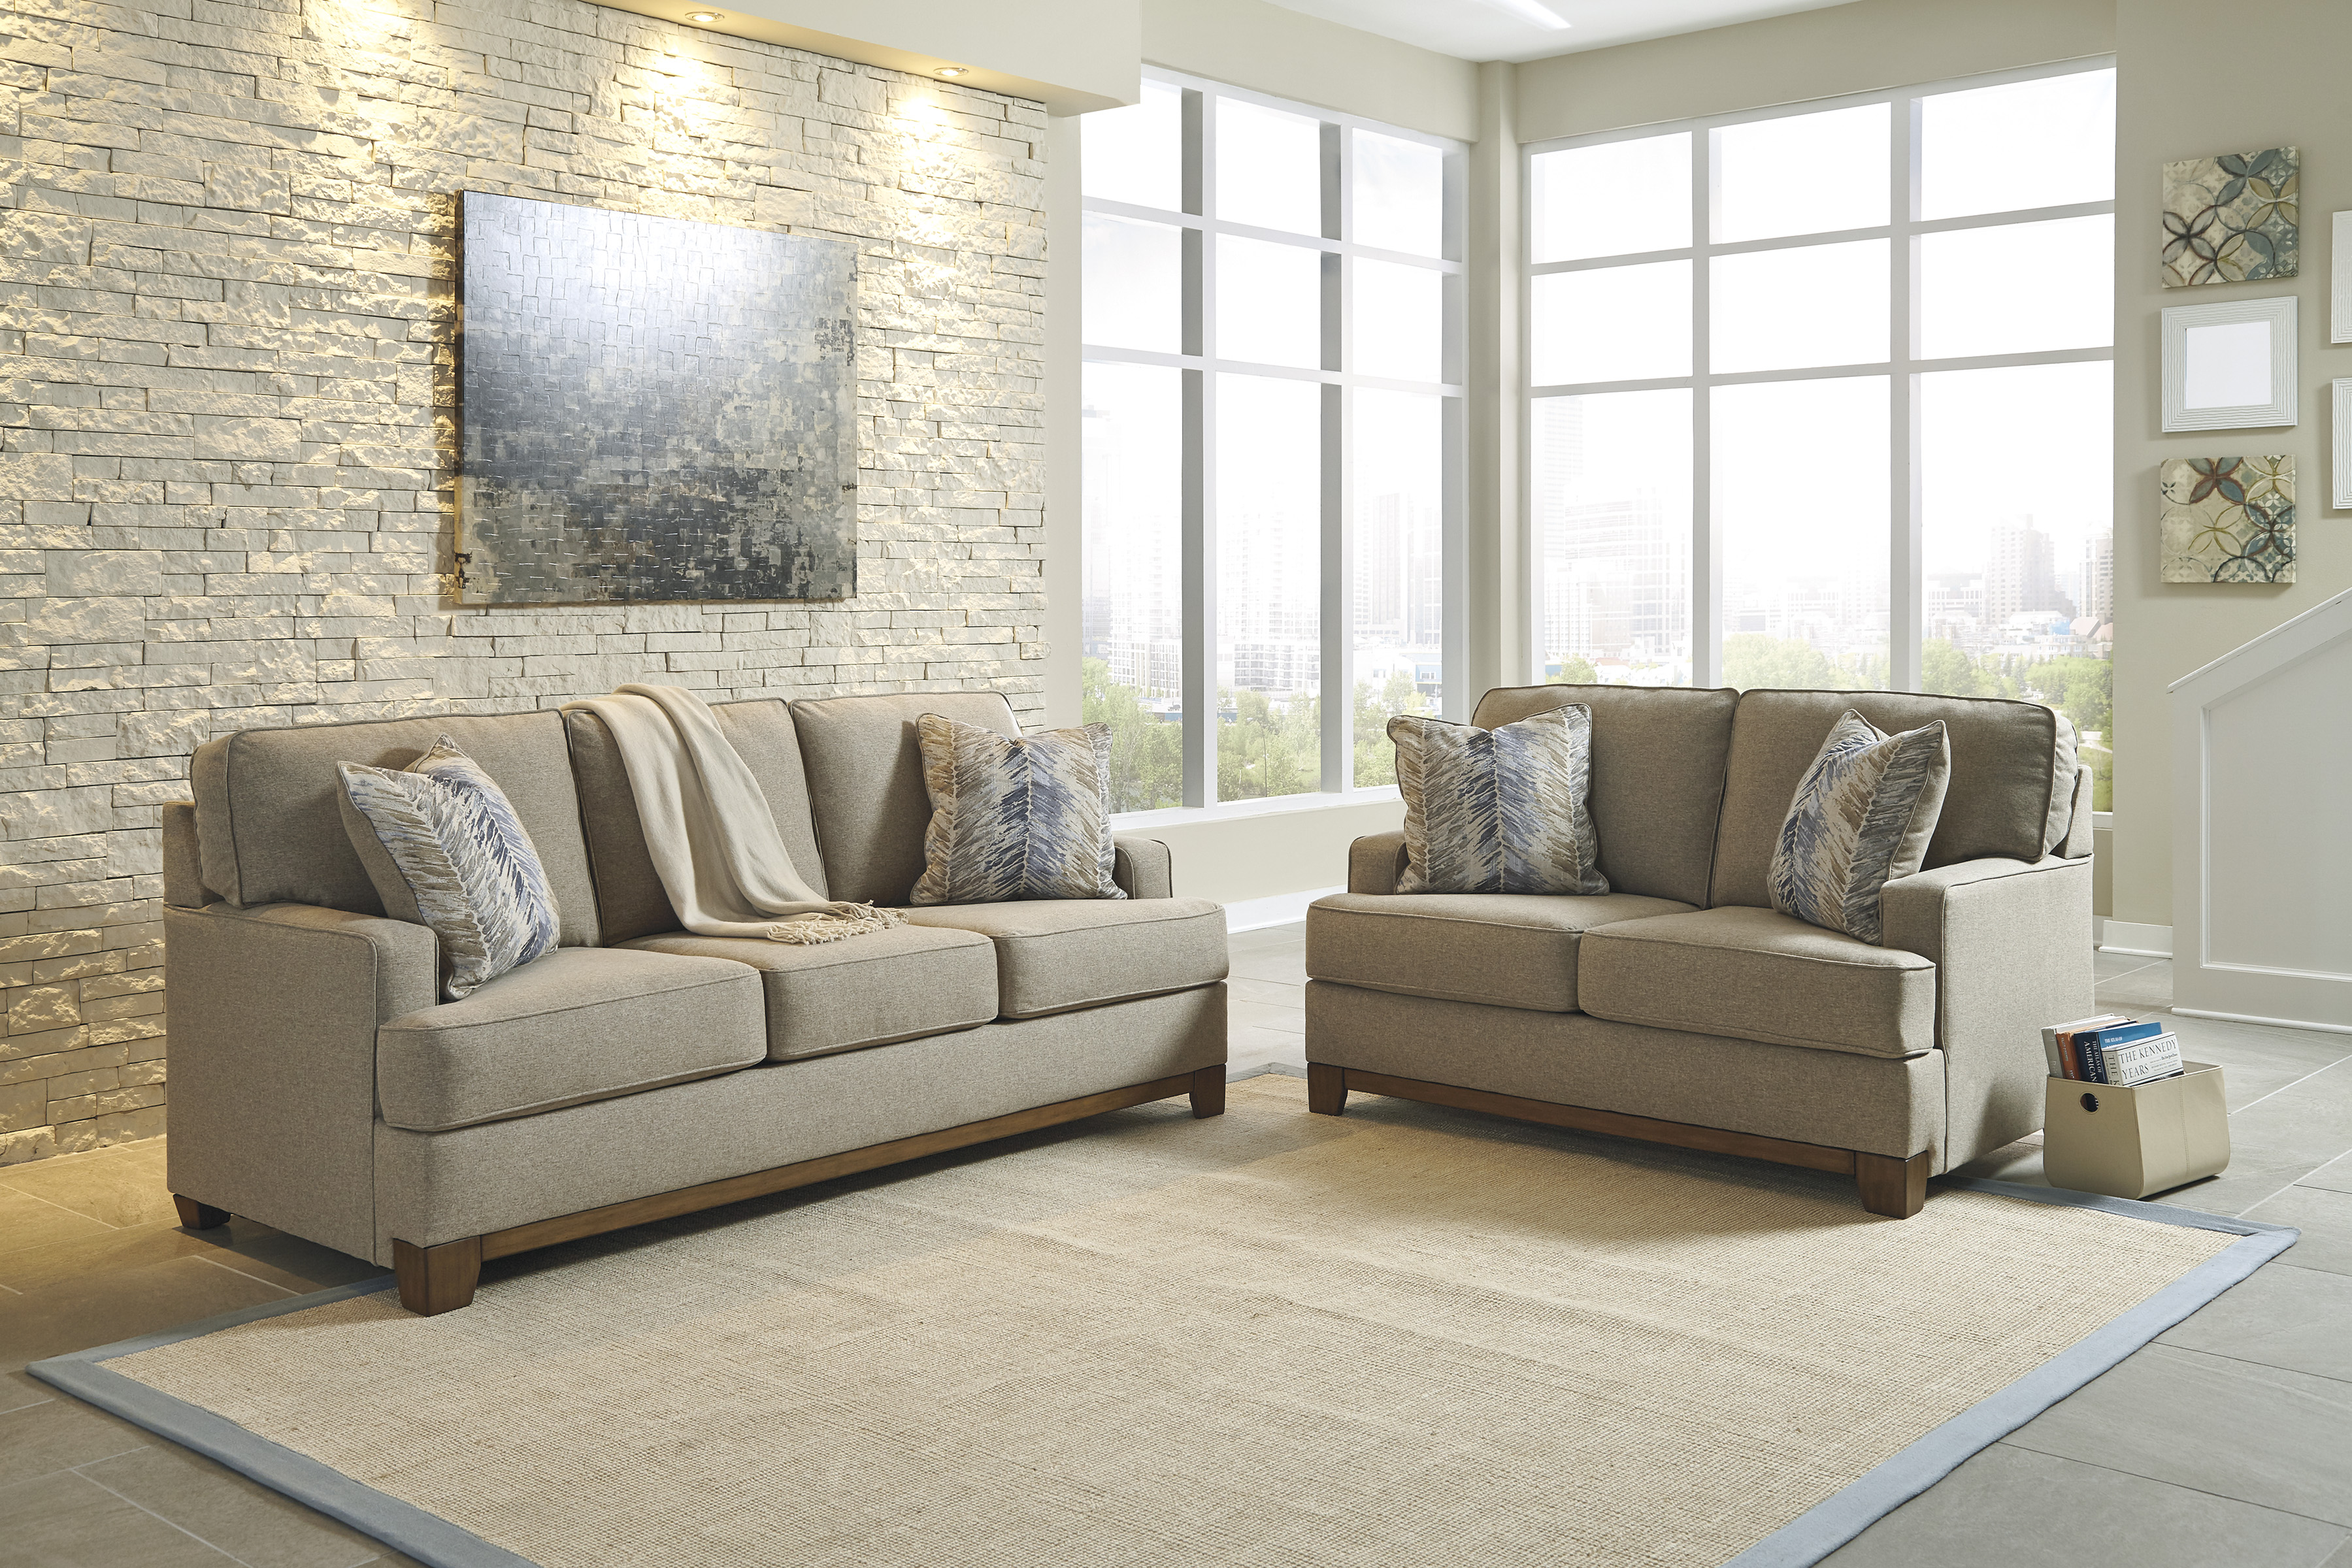 Majik | Rent To Own Living Room Furniture in Pennsylvania| Rent-To-Own